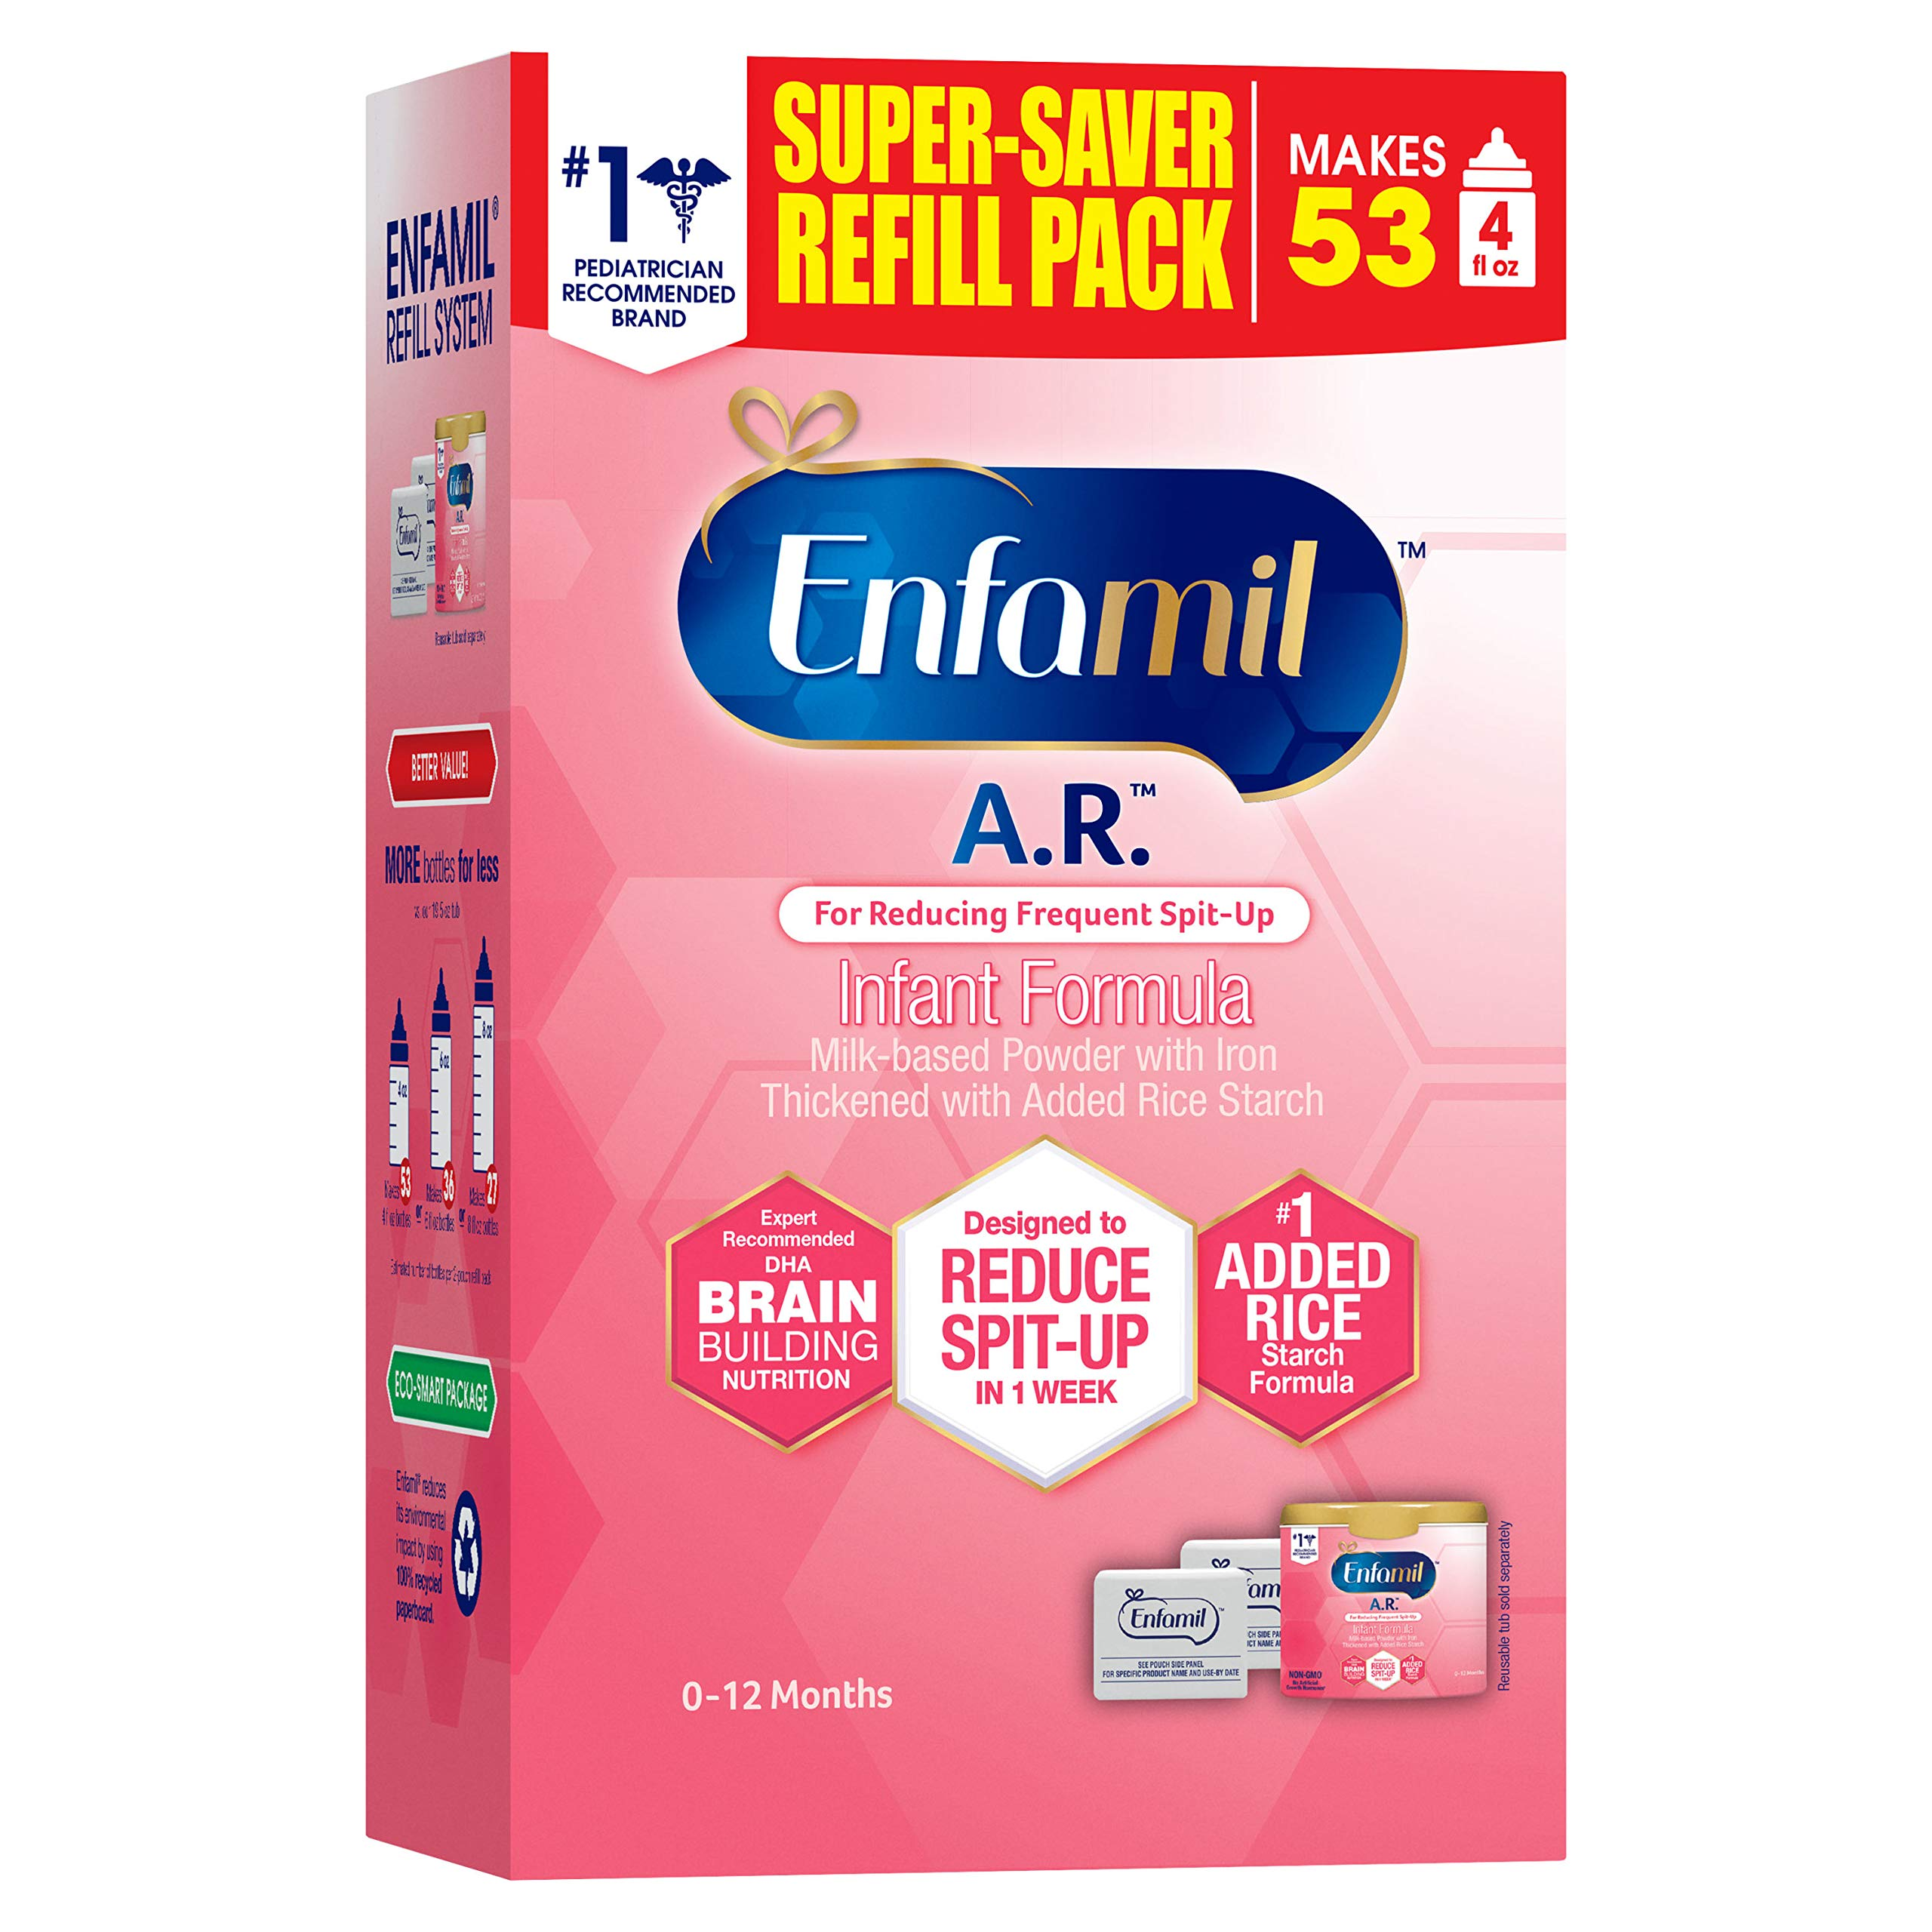 Enfamil A.R. Infant Formula Clinically Proven to reduce Spit-Up in 1 week, 30.4 oz